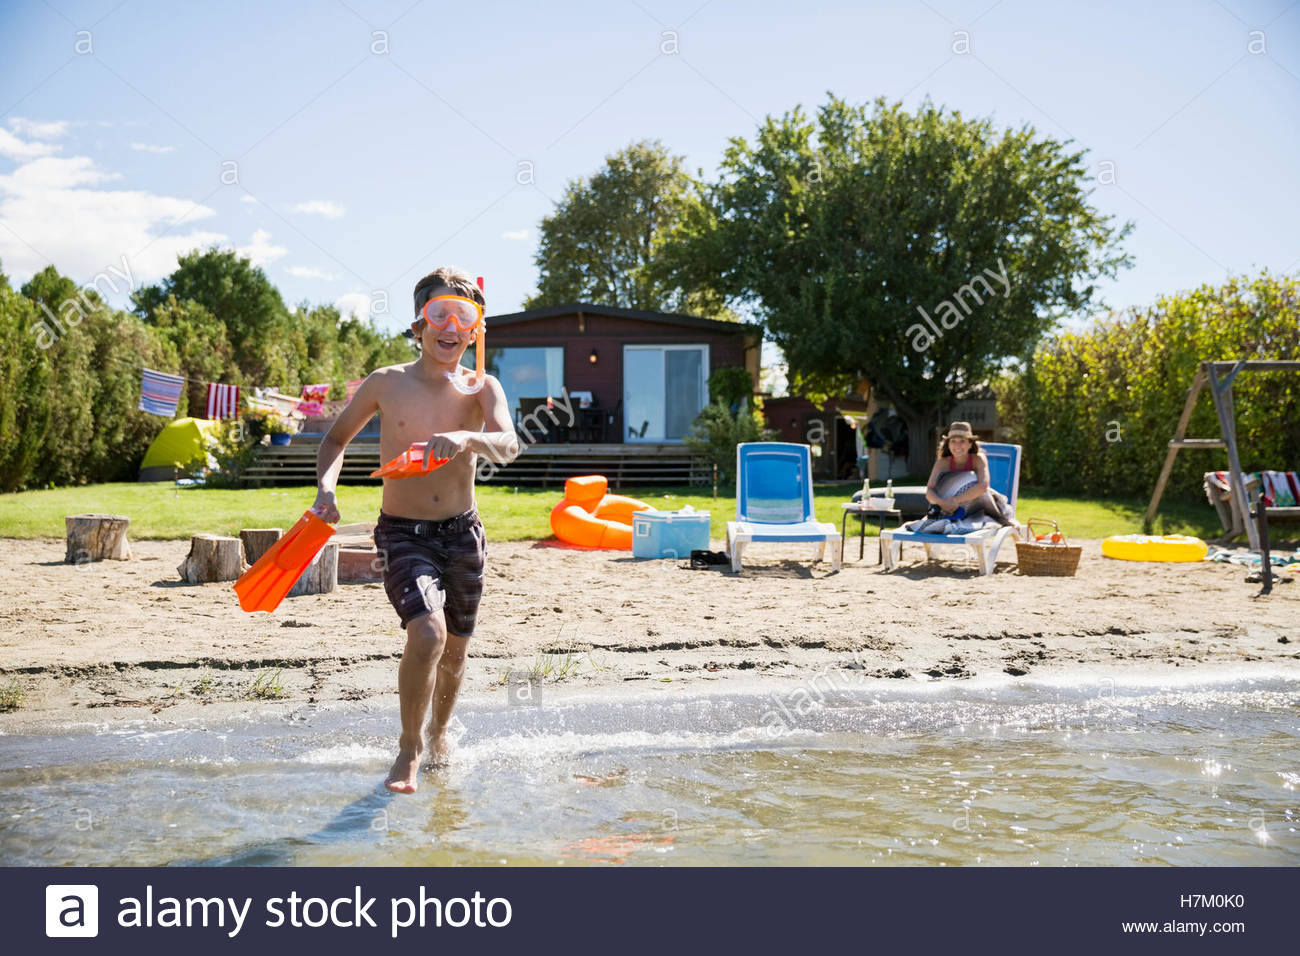 Boy with snorkel and flippers running in sunny summer lake - Stock Image